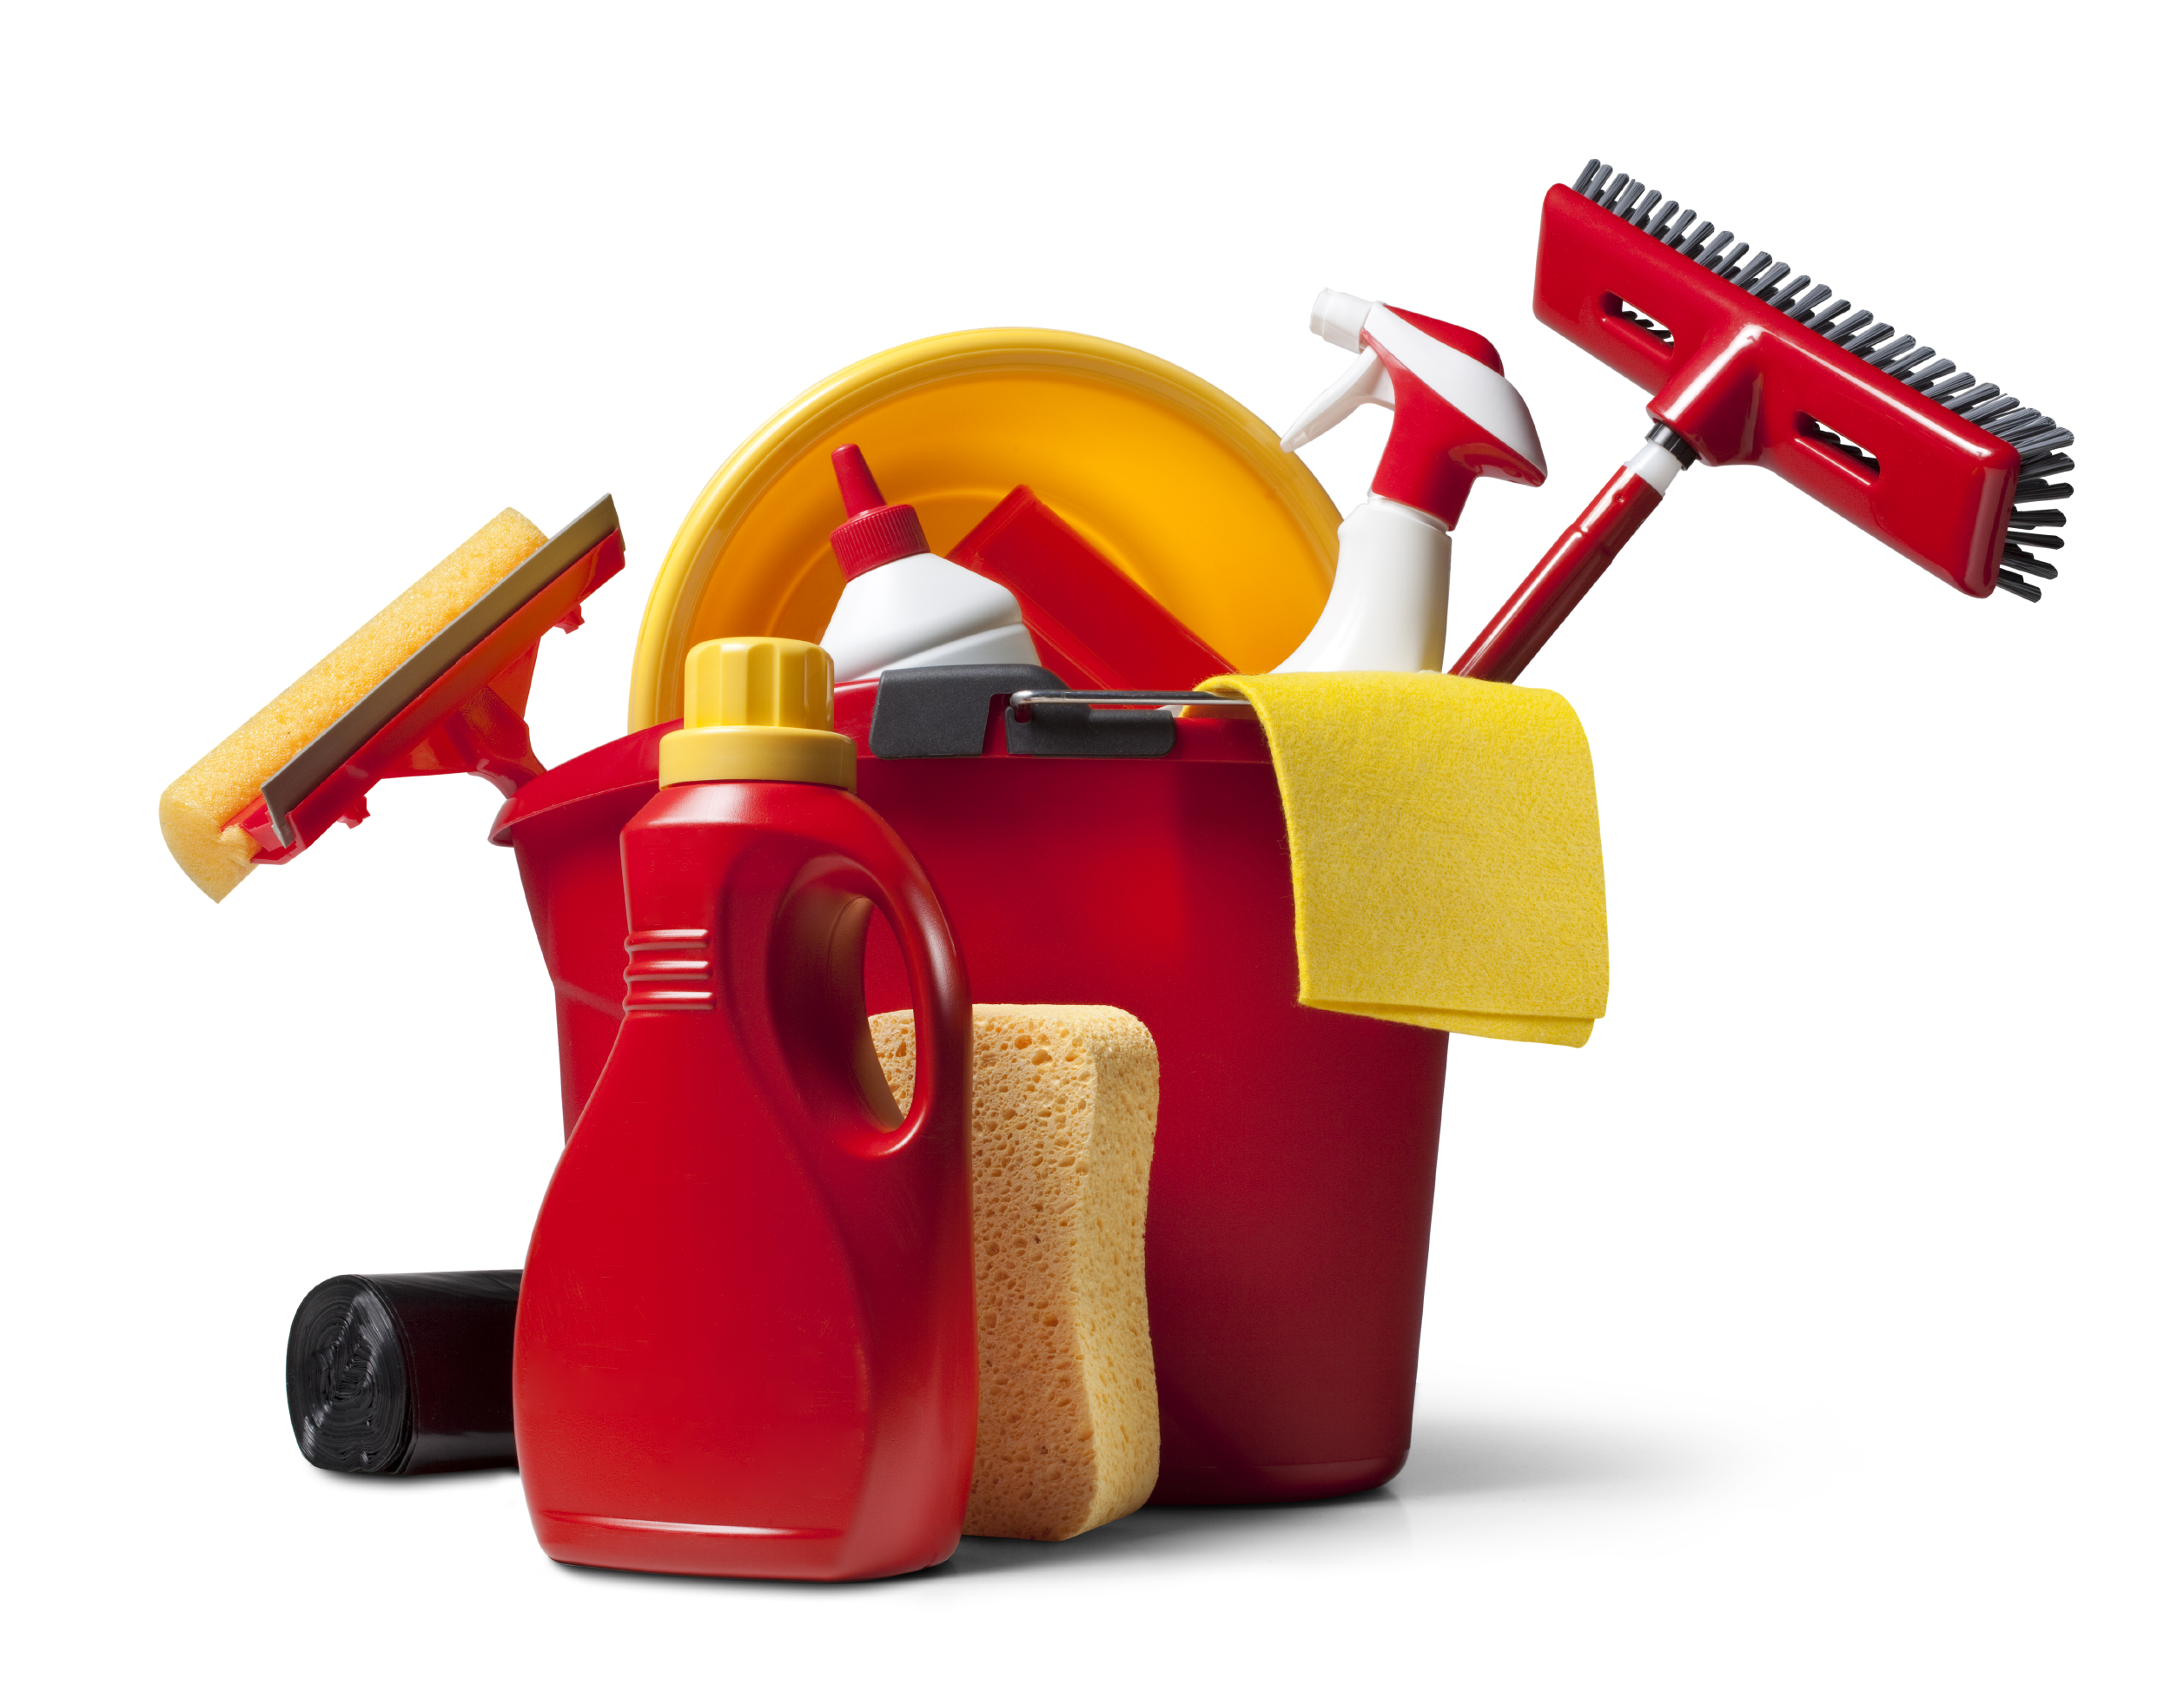 14 Cleaning Supplies Pictures Free Cliparts That You Can Download To